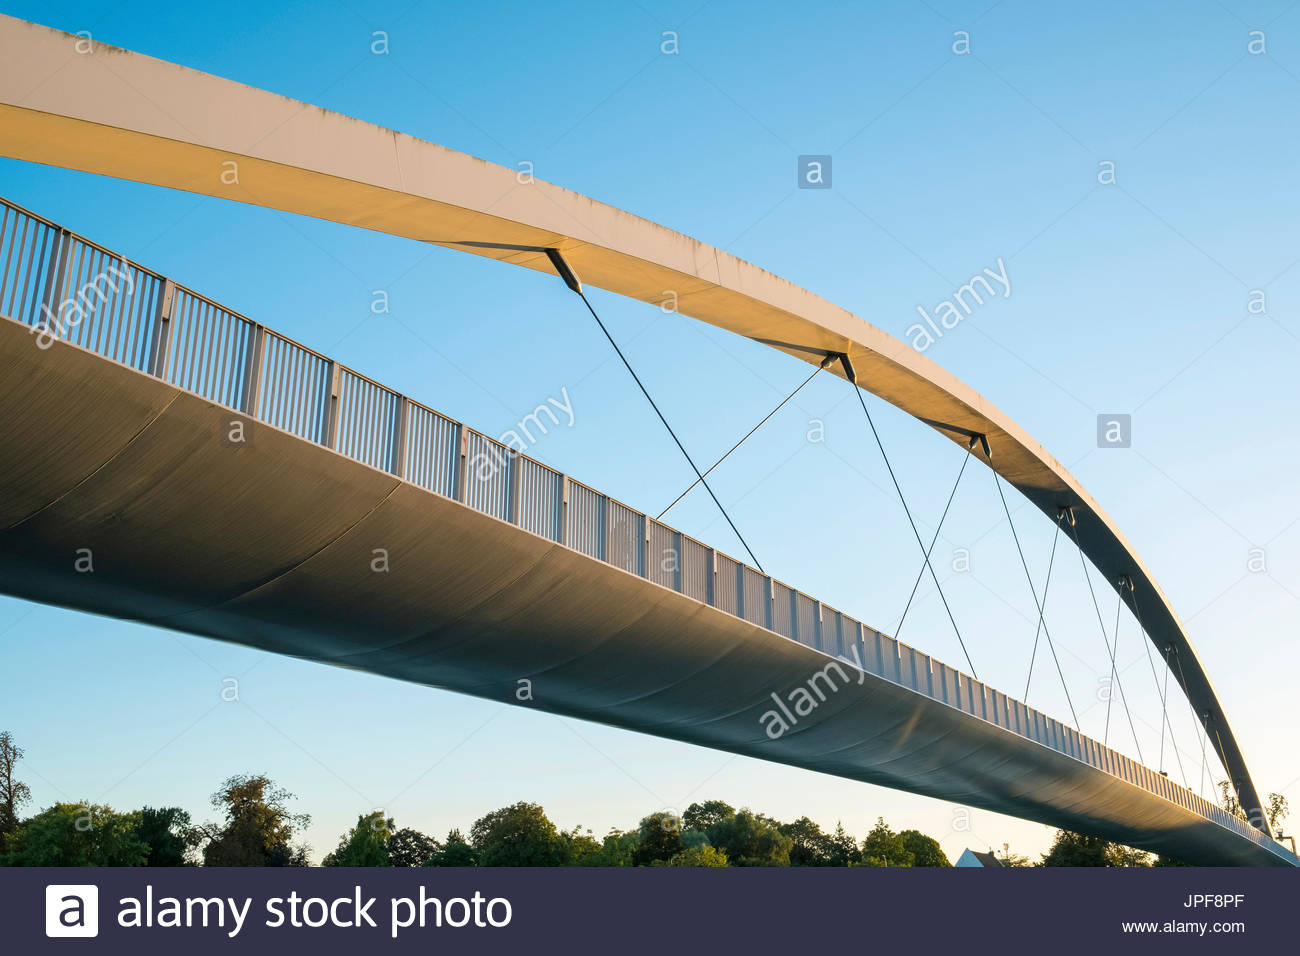 Netherlands, Limburg, Maastricht, Wyck-Ceramique quarter. Hoge Brug pedestrian bridge over the Maas River. - Stock Image